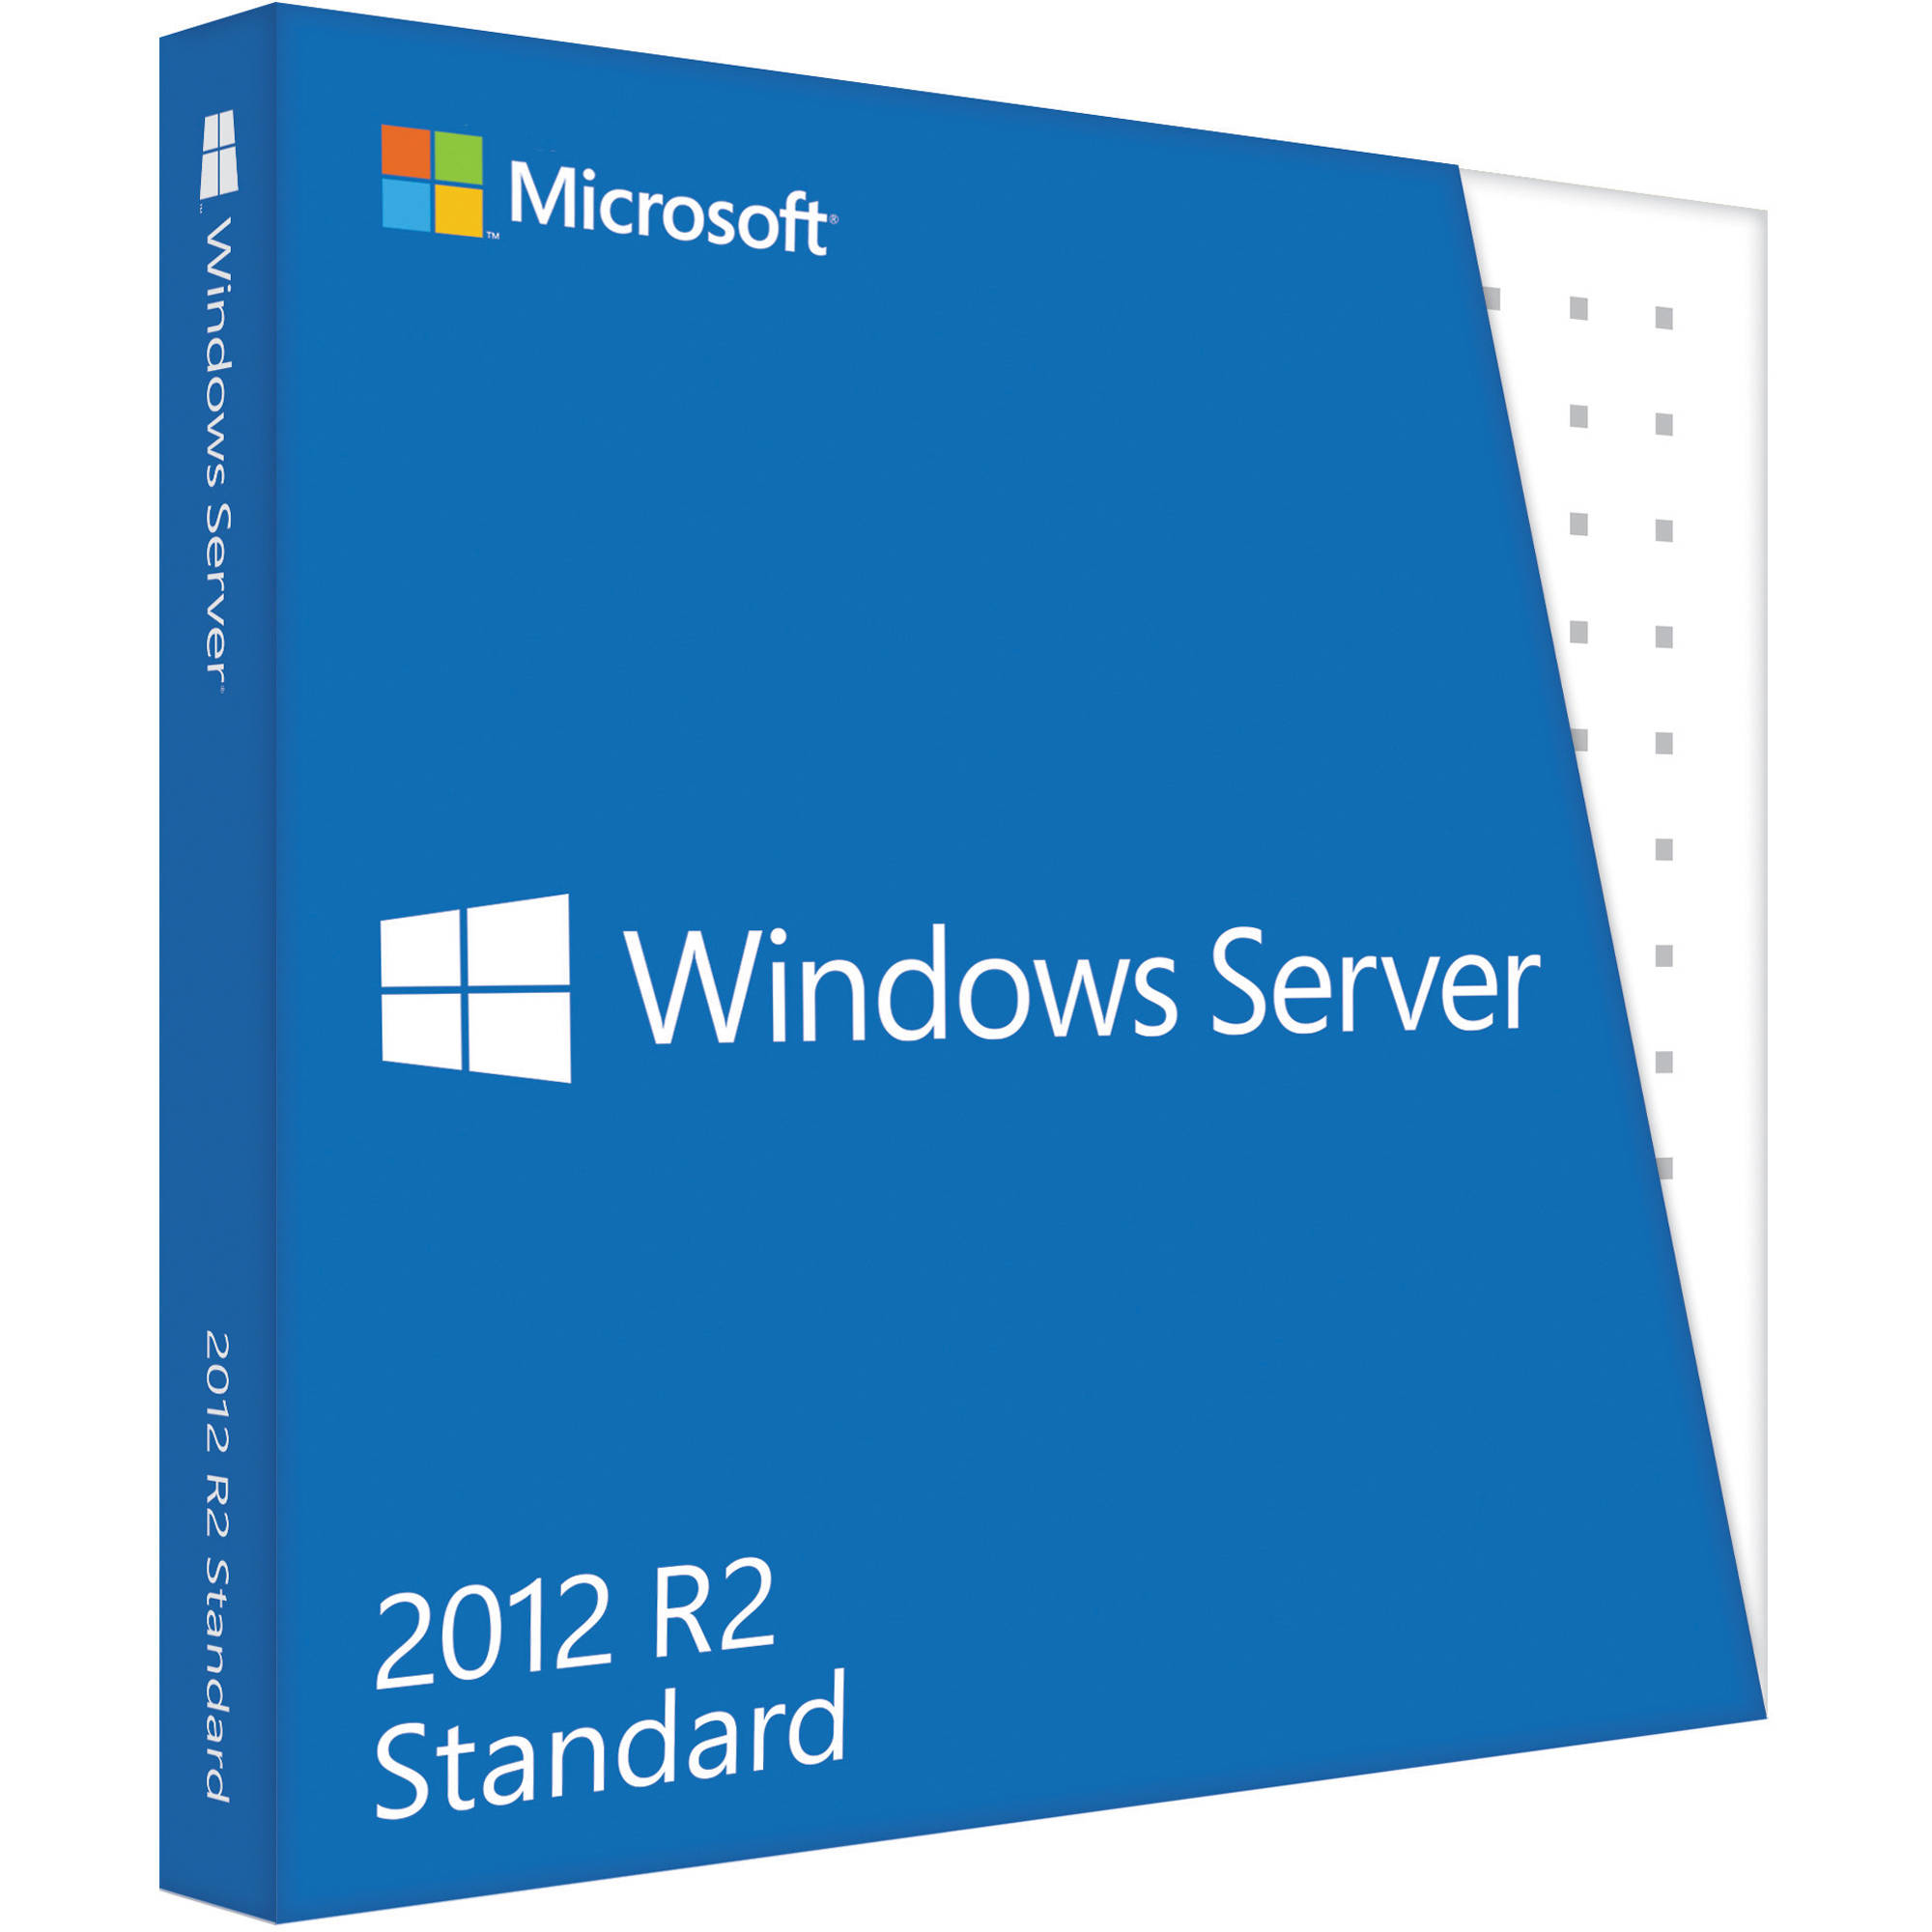 P73-06165 Oem: Microsoft Windows Server 2012 Standard R2 X64 English 1p Dsp 2cpu/2vm - Ent01